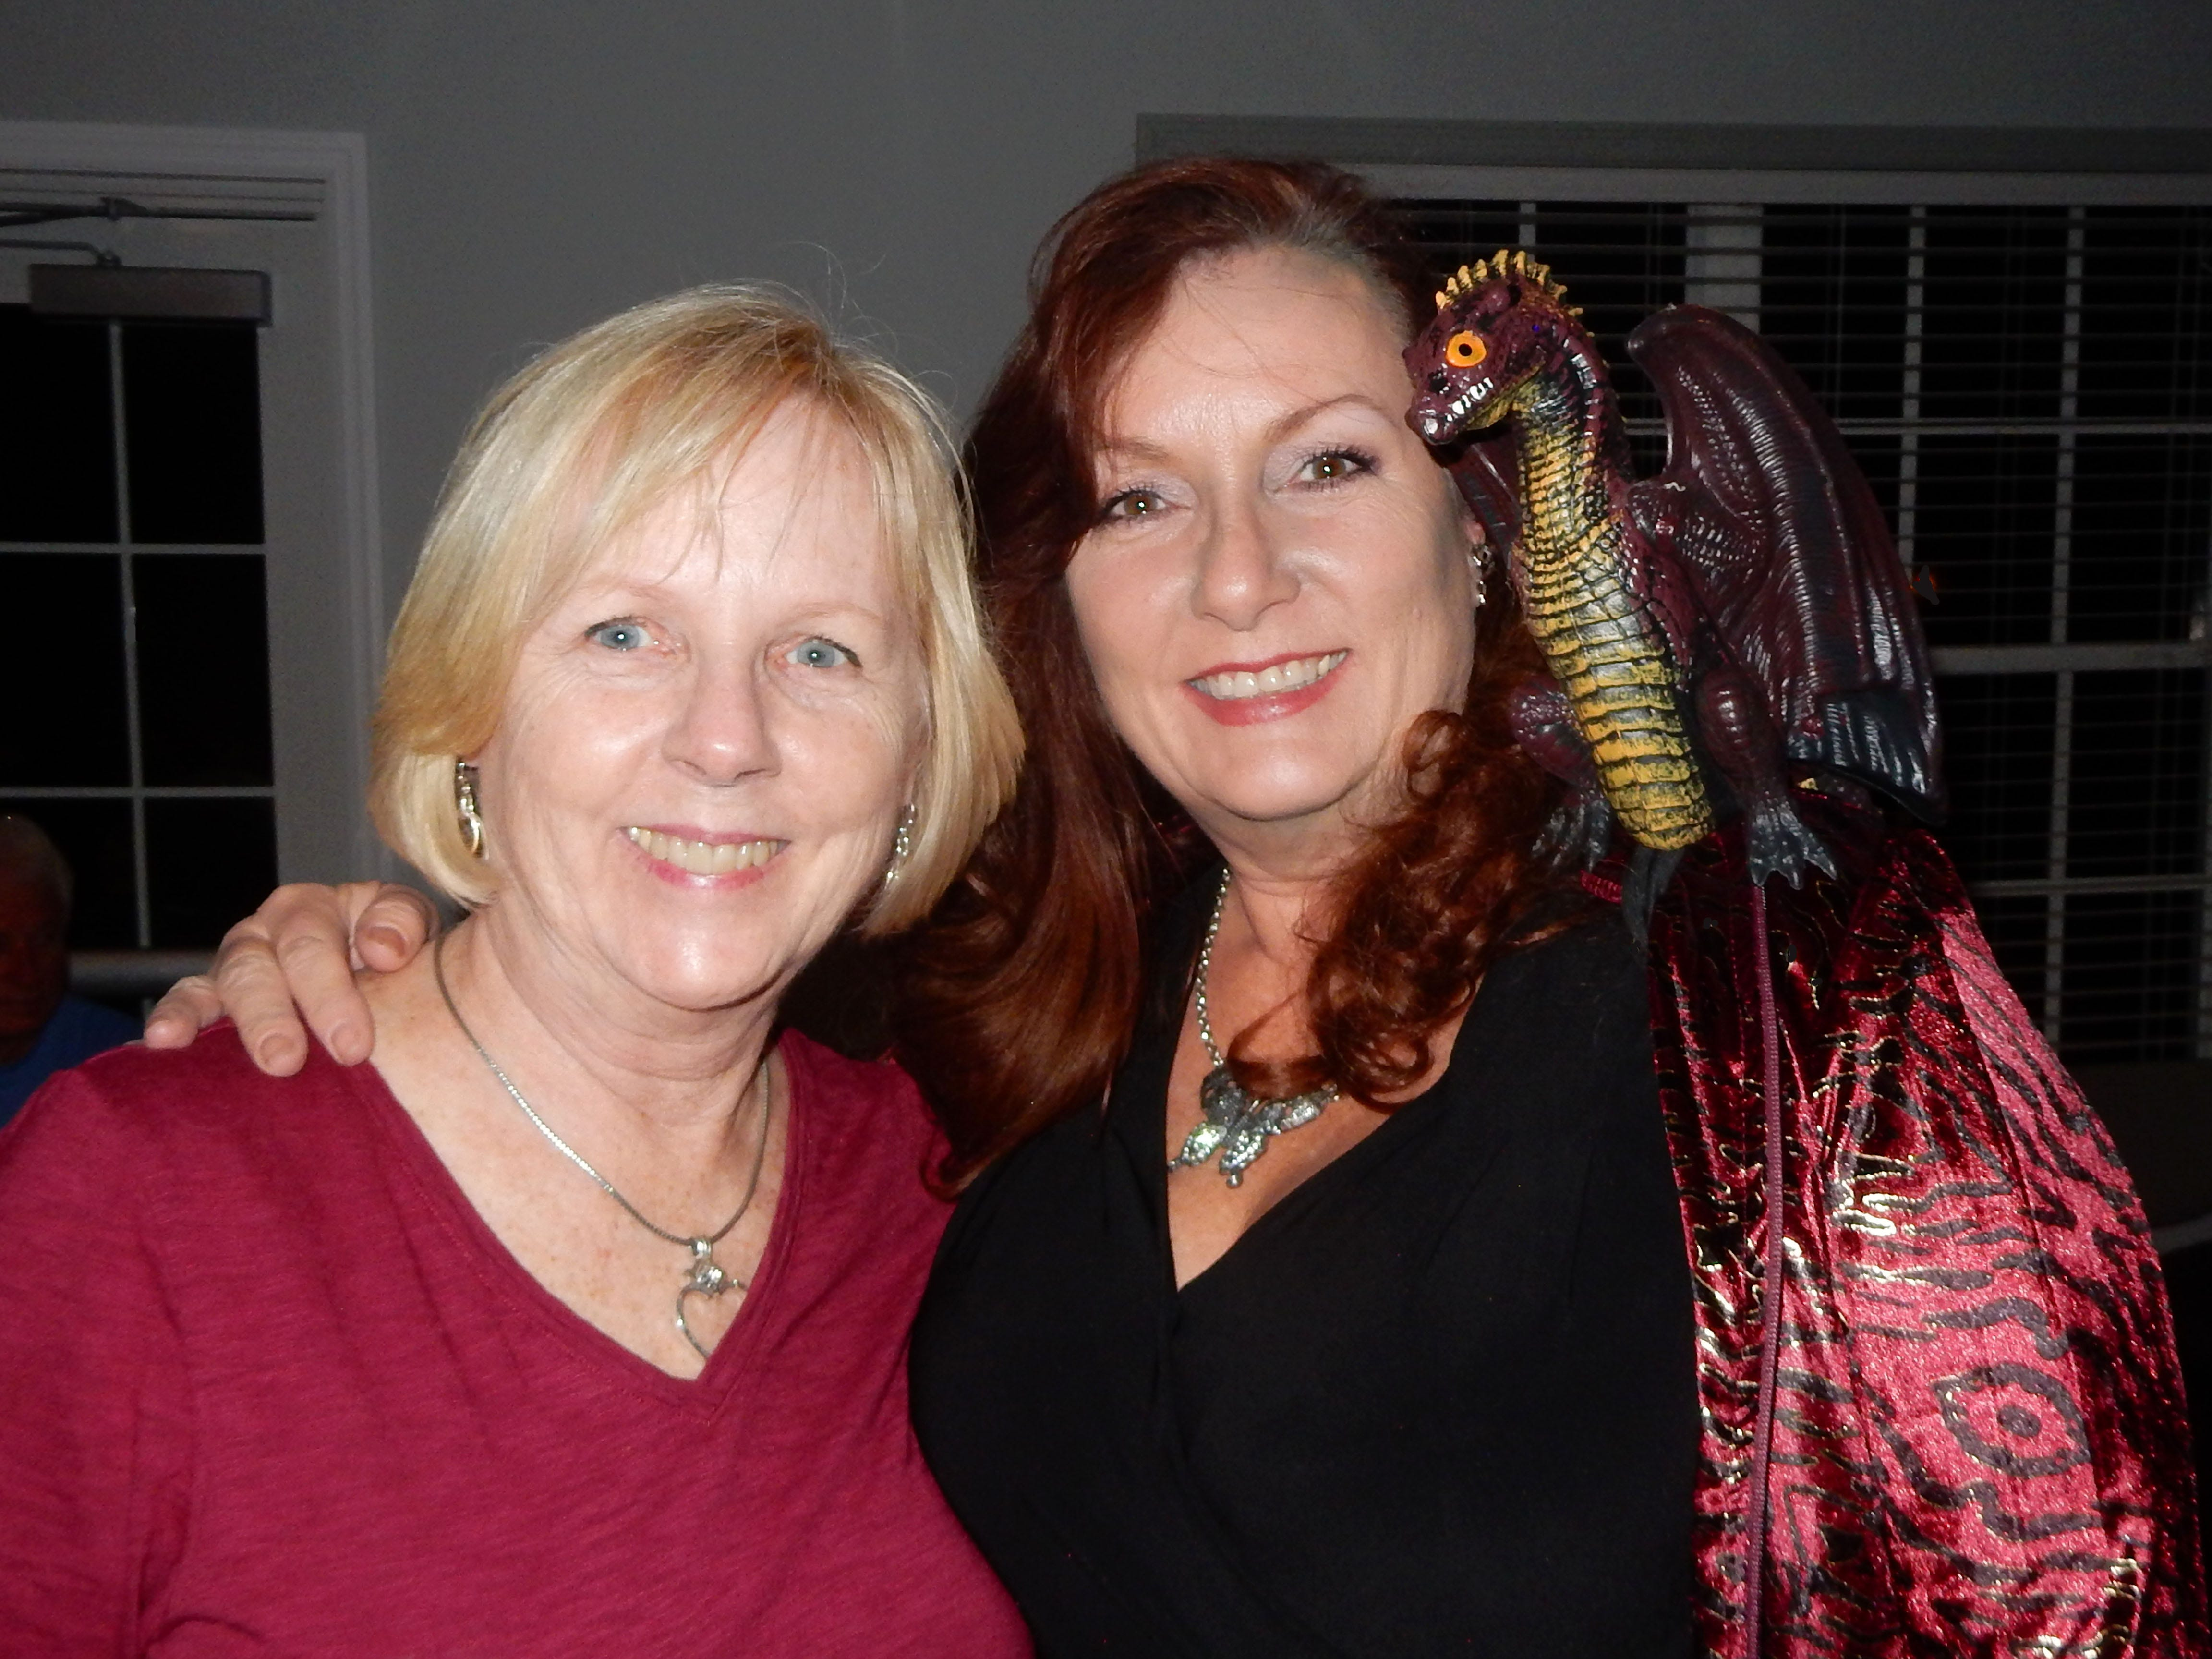 Leslie Spurlock, left, and Cindy Jewett at the Exchange Clubs Halloween Party.